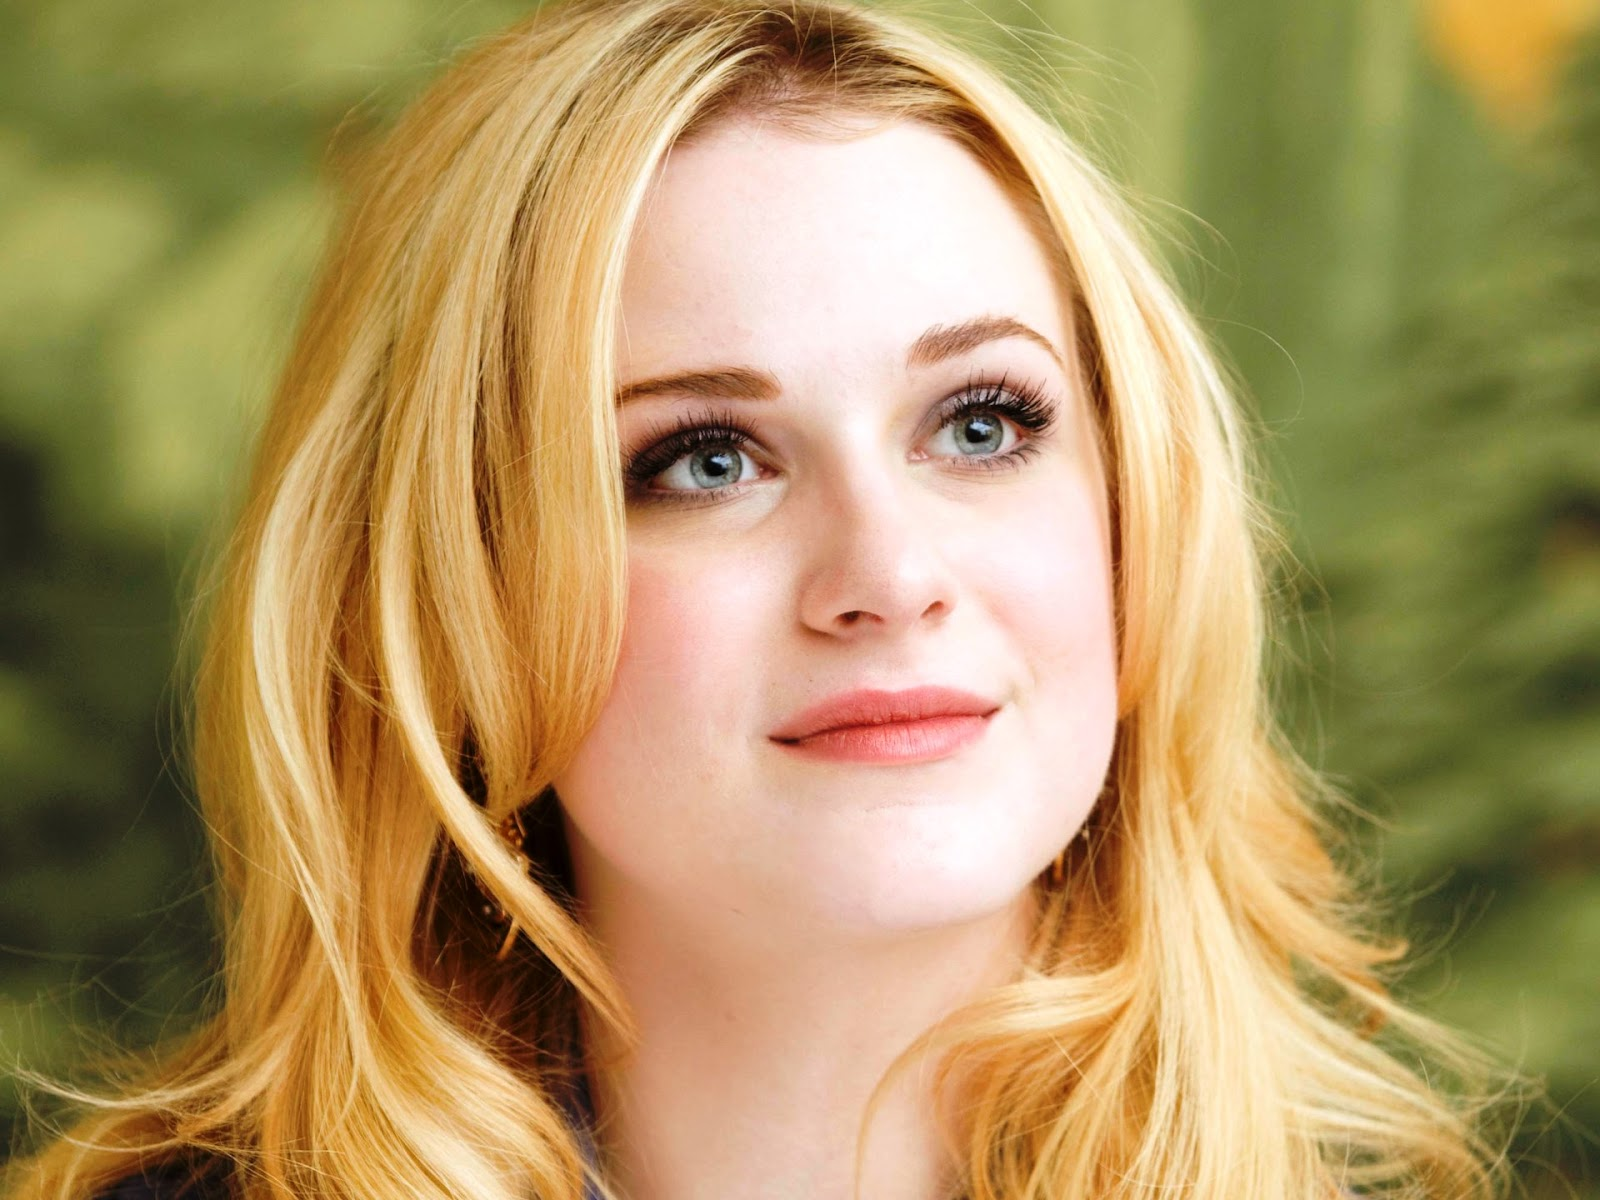 http://2.bp.blogspot.com/-5oy-v68Br50/TqGVGbYL0bI/AAAAAAAAEvw/nXHMBd0c0Ic/s1600/kaneda_Evan_Rachel_Wood_Mildred+Pierce+Press+Conference_+%252813%2529.jpg